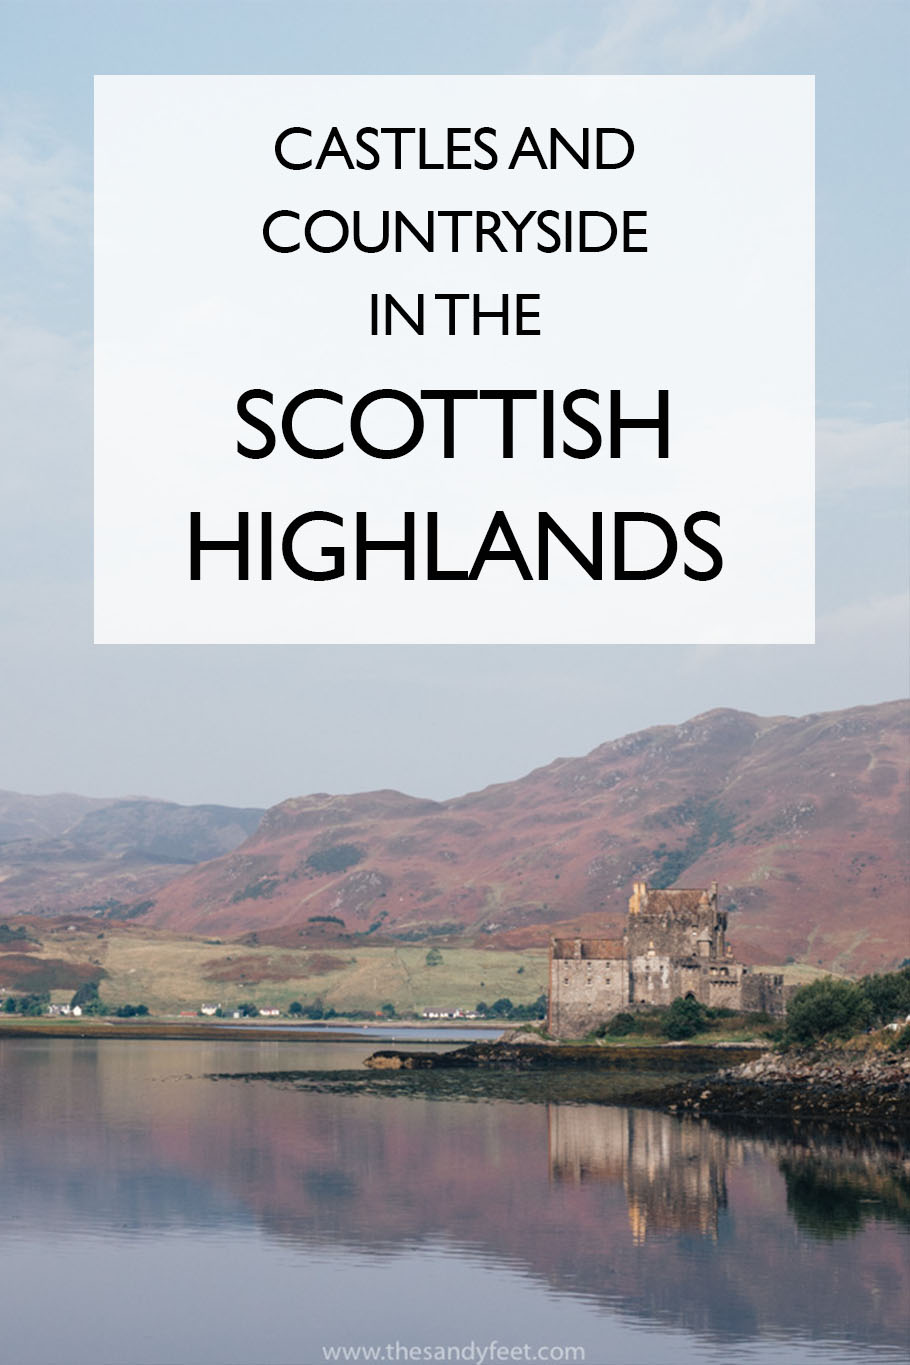 Castles and Countryside: A Waltz Through The Scottish Highlands